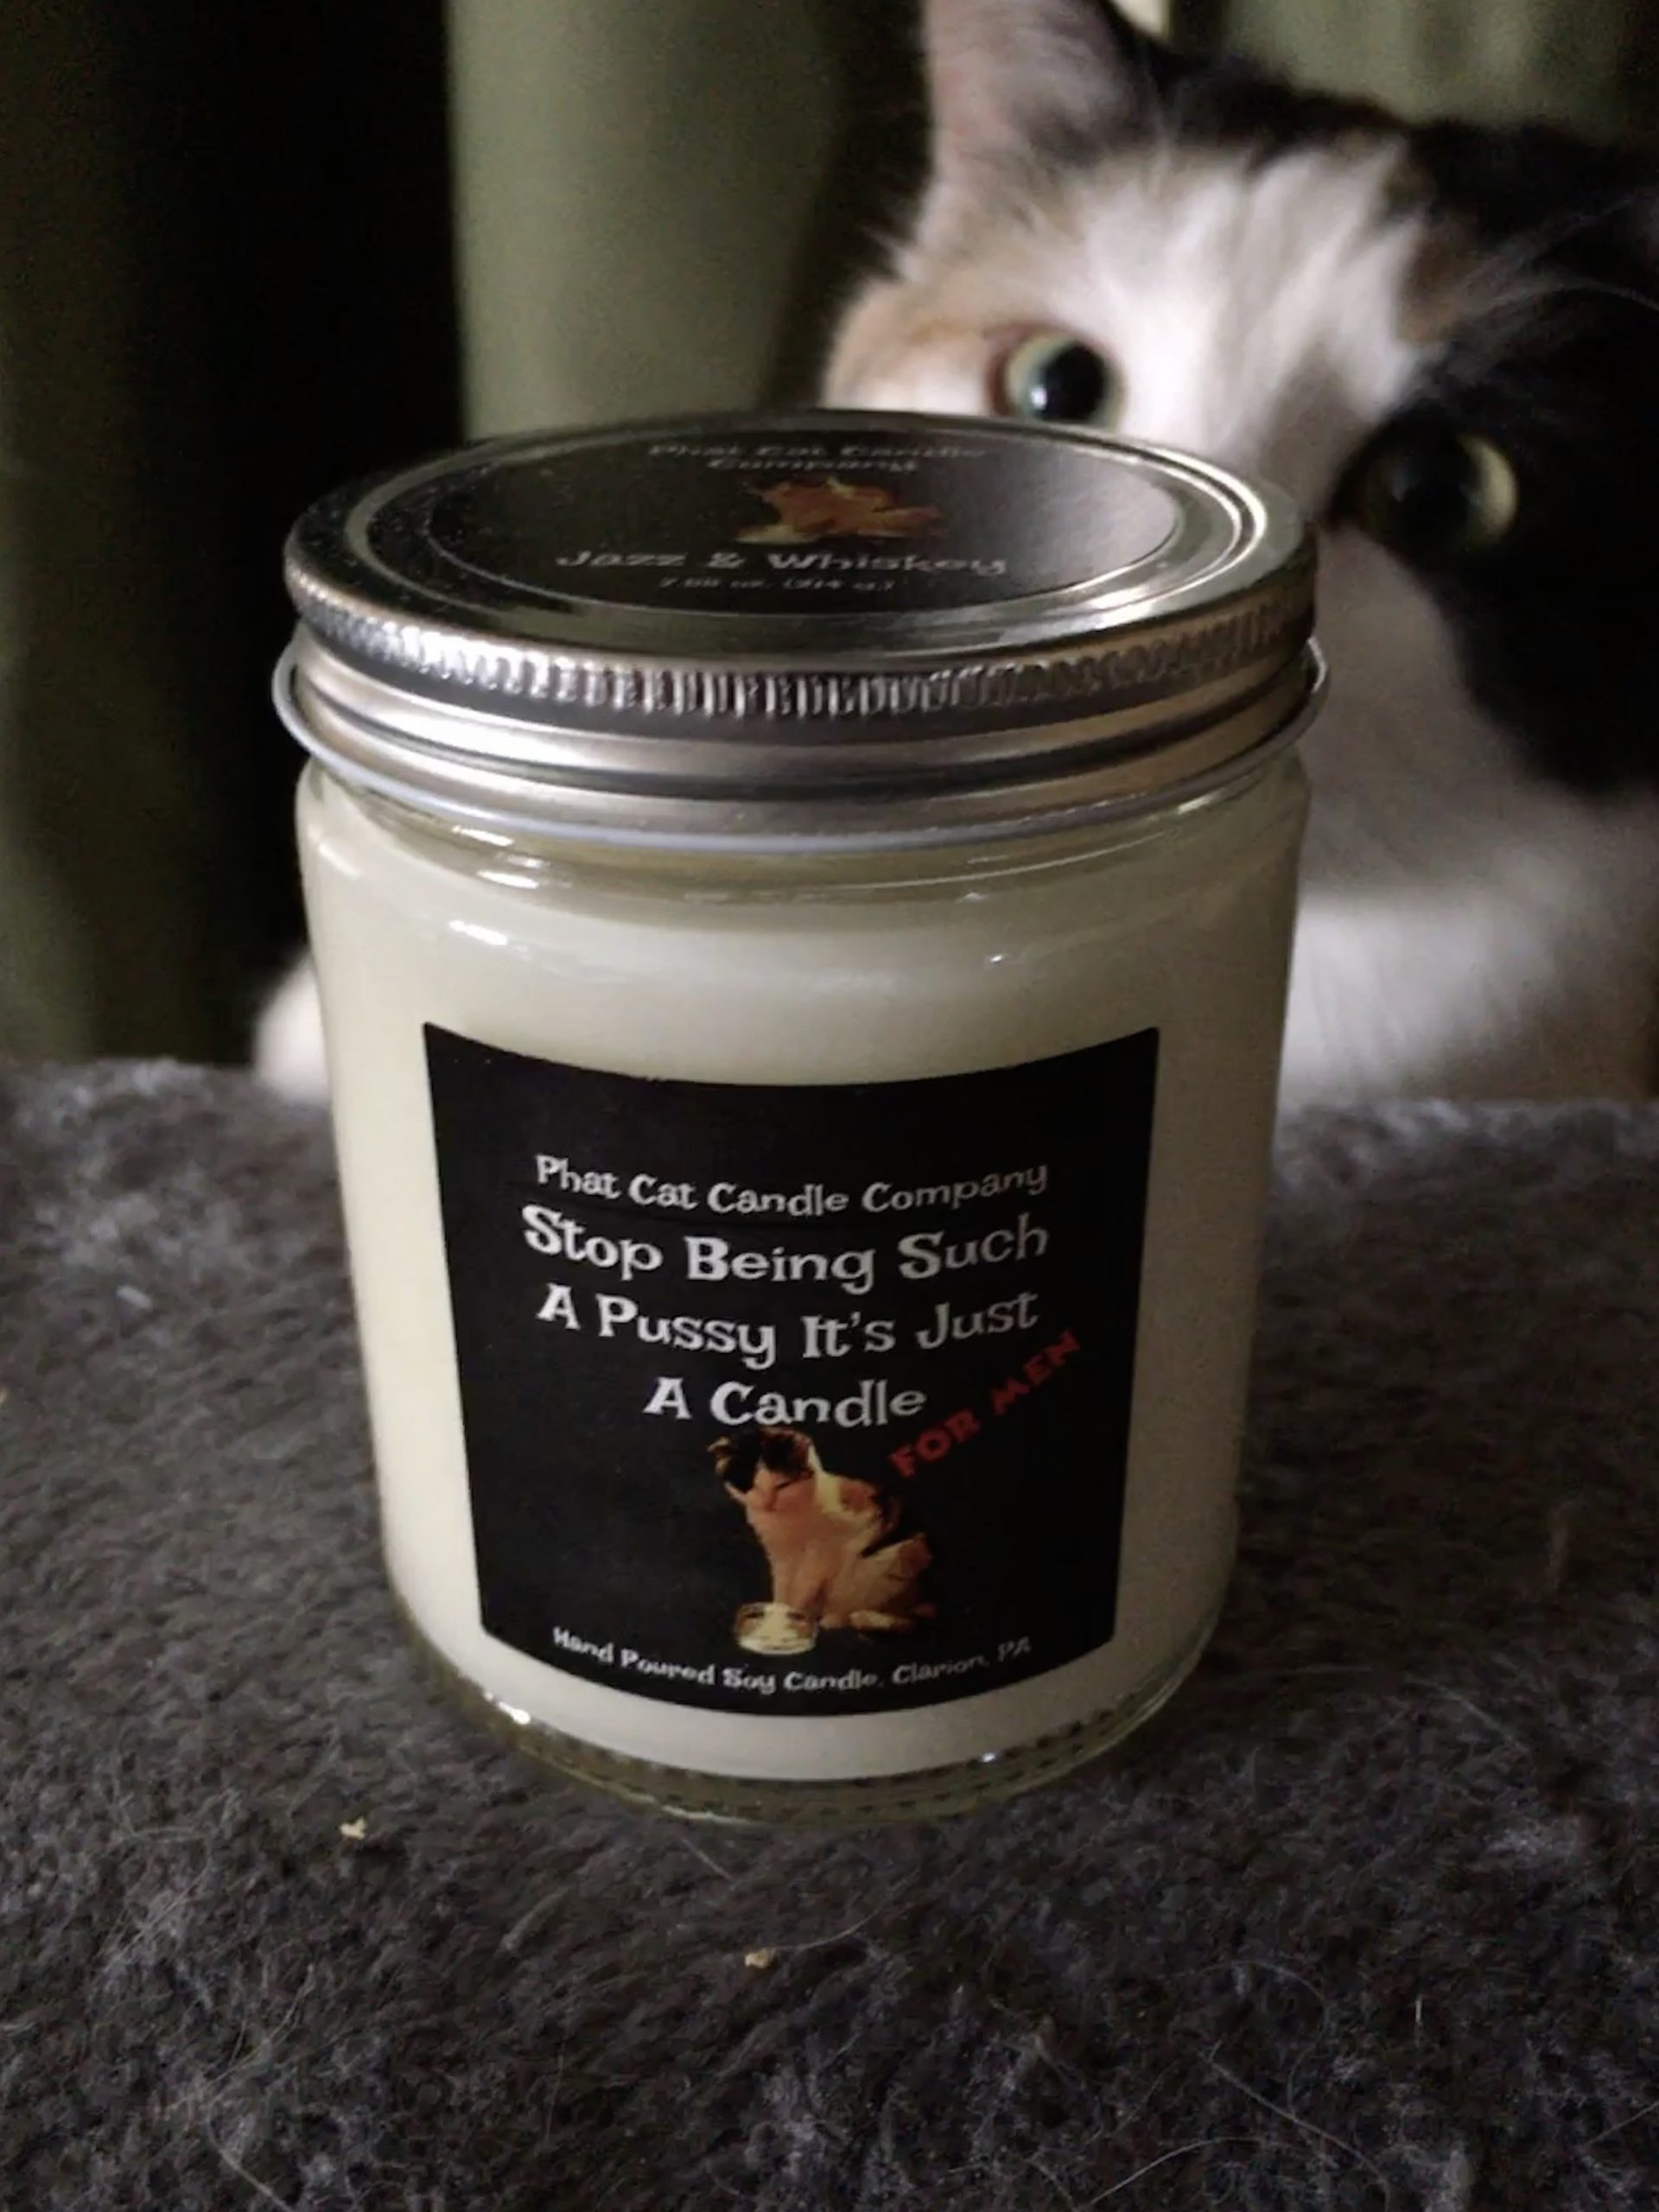 Phat Cat Candle Company